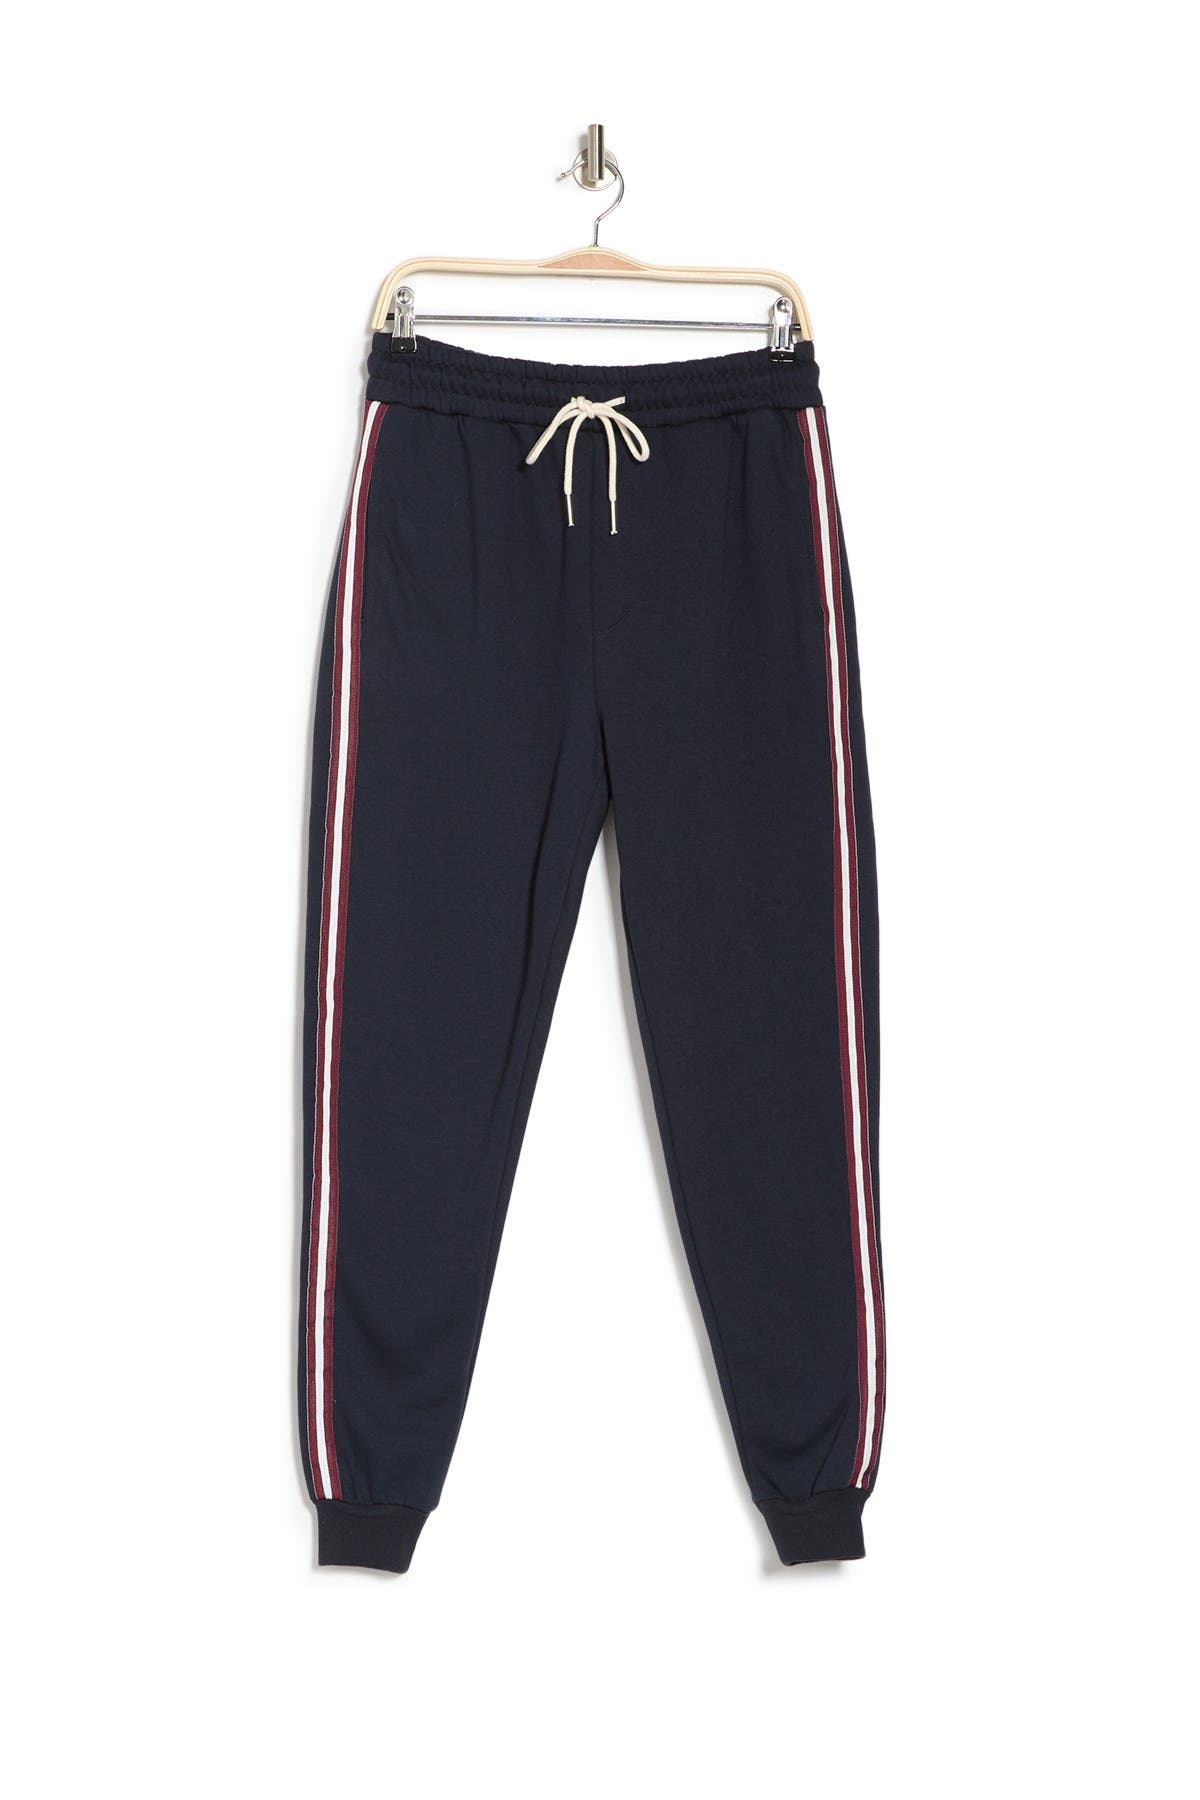 Image of Sovereign Code Valiant Joggers